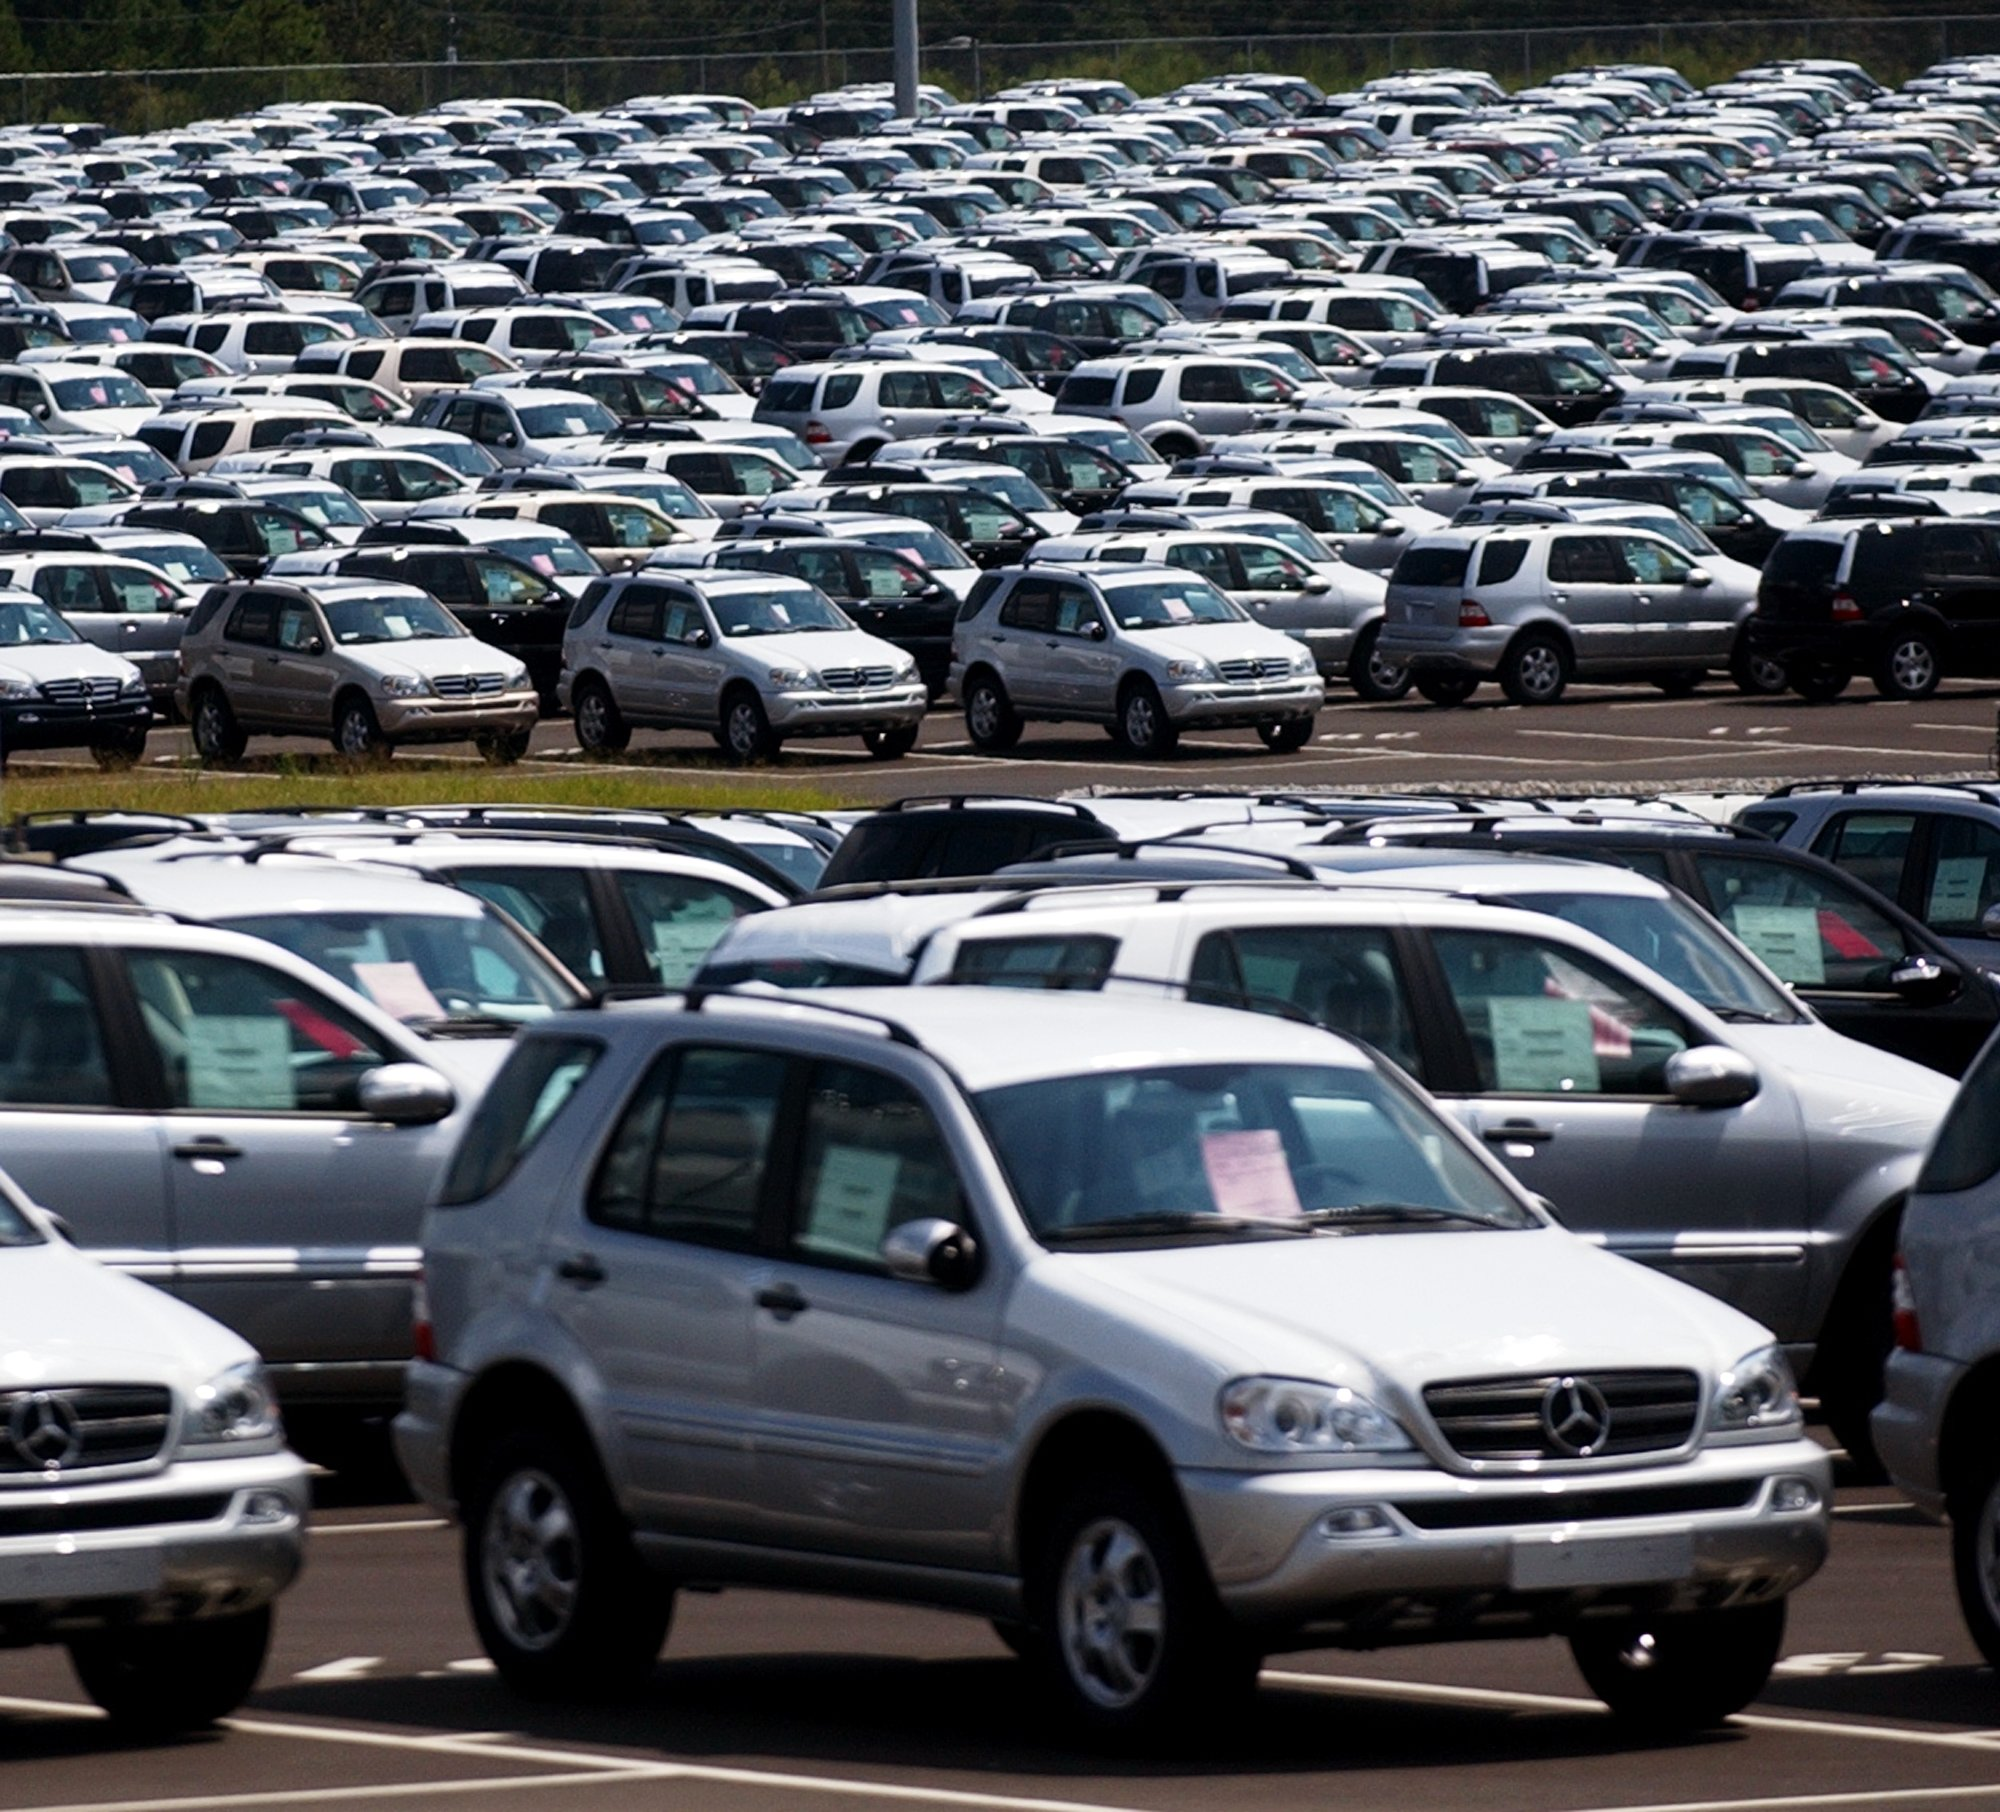 Hundreds Of M Cl Automobiles Are Shown In The Marshalling Yard At Vance Mercedes Benz Plant Thursday Afternoon Tuscaloosa News Photo By Jason Getz